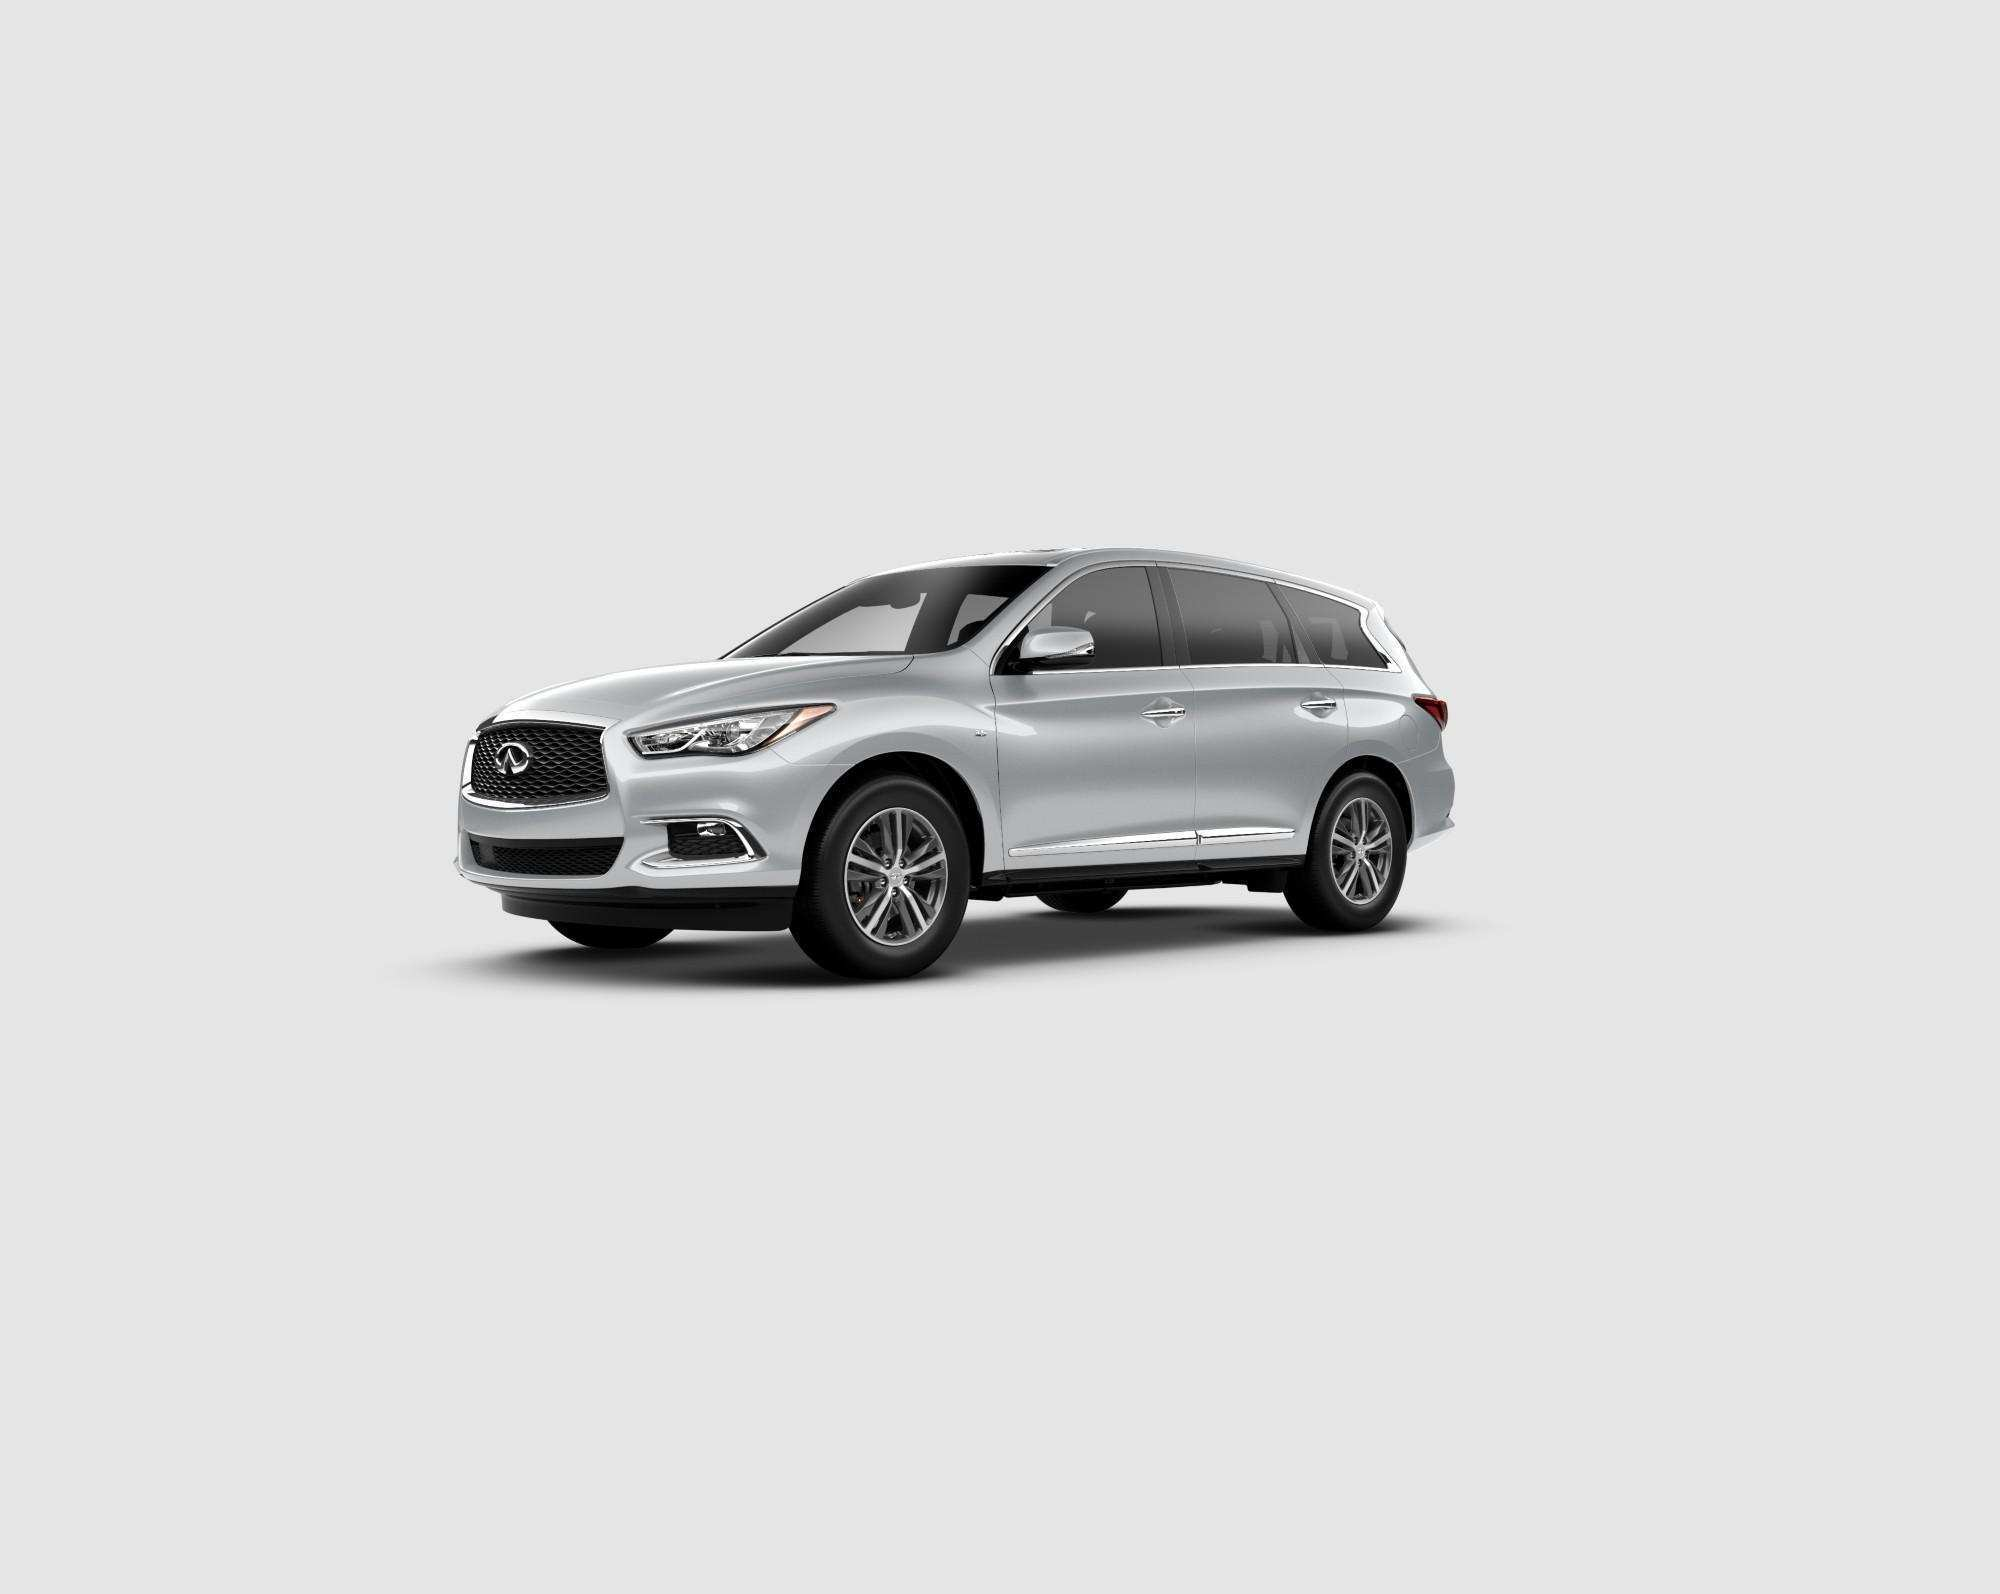 41 Concept of The New Infiniti Qx60 2019 Spesification Model by The New Infiniti Qx60 2019 Spesification